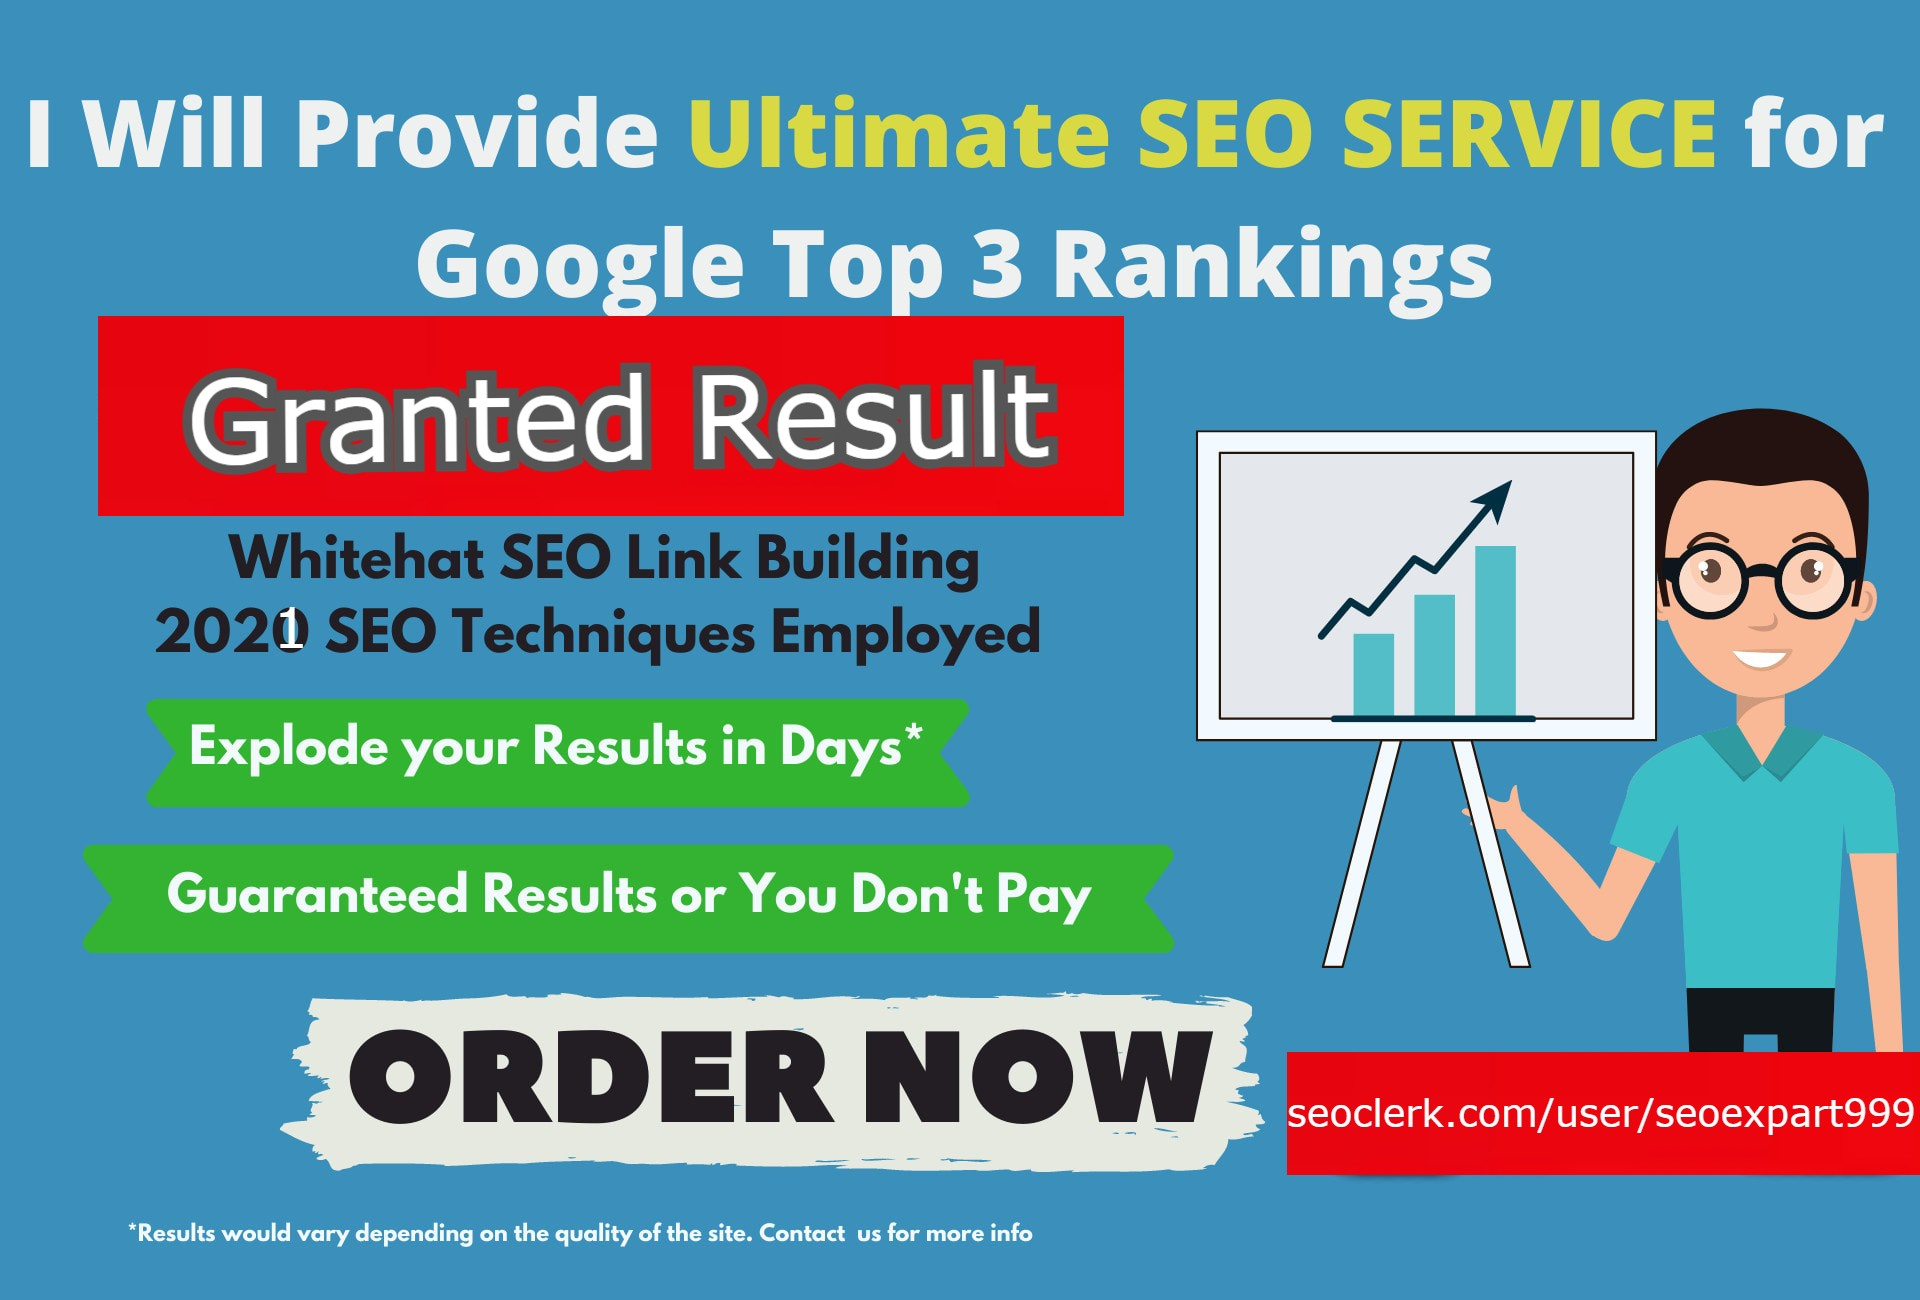 I will do ultimate monthly SEO service for page 1 rankings for 2021